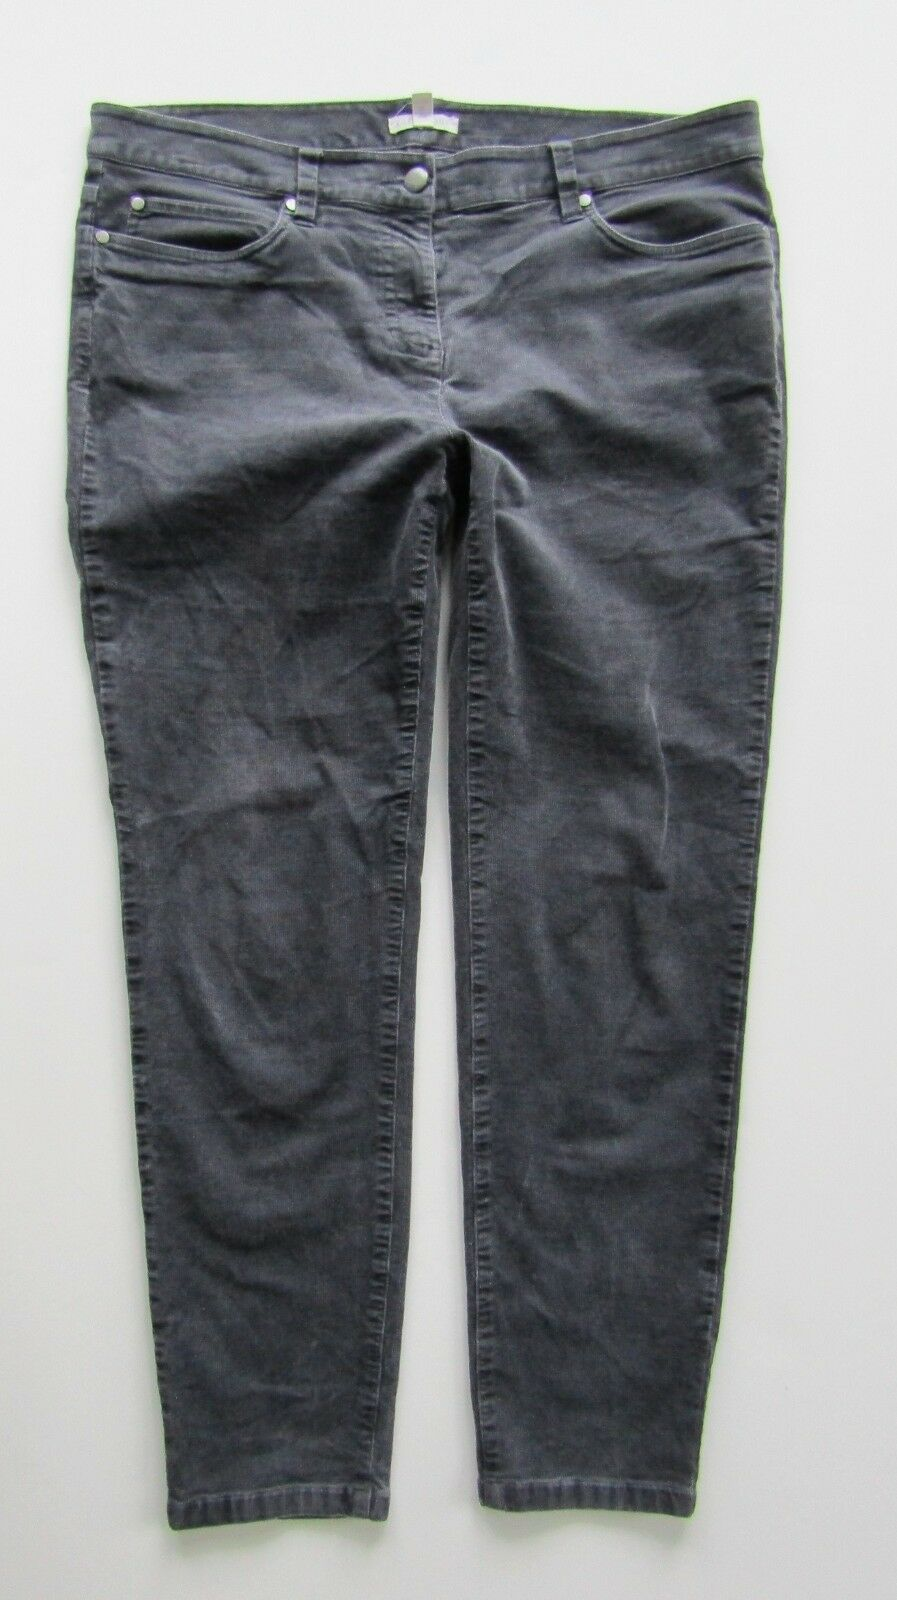 Eileen Fisher Skinny Ankle Organic Cotton Grey Corduroy Jean - Size 14 Petite